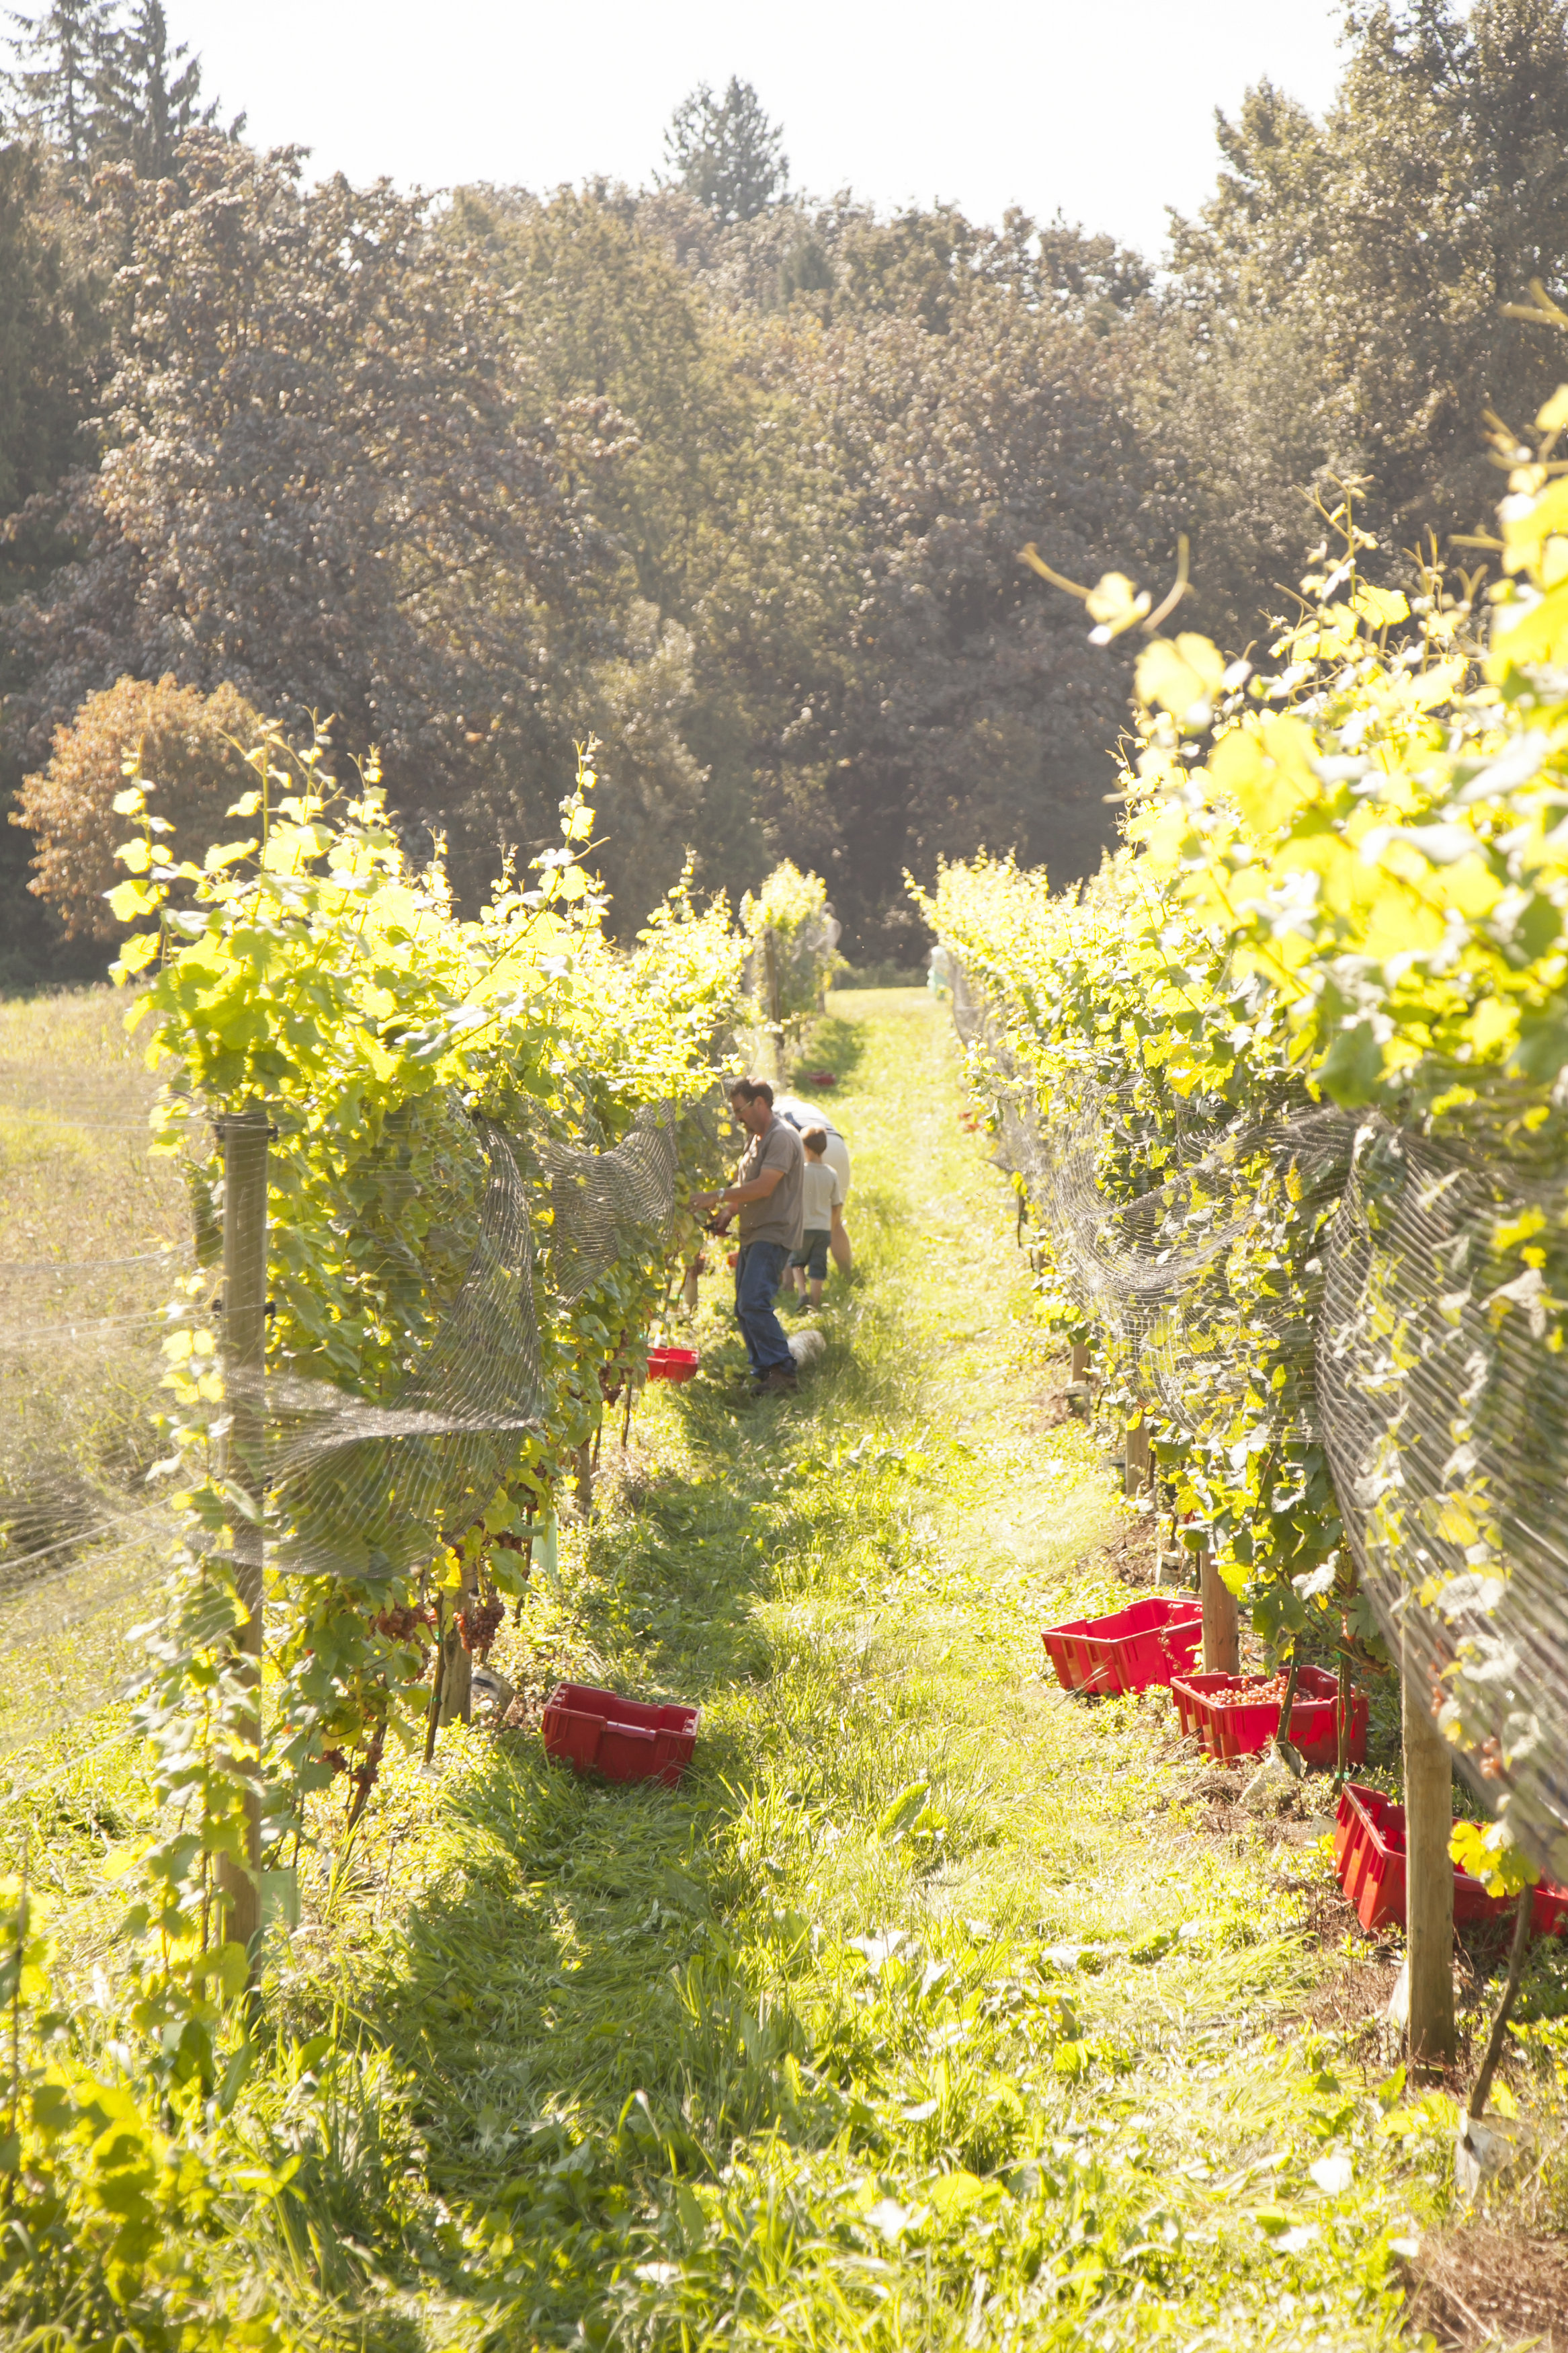 It's harvest time at Abbotsford's Singletree Winery.